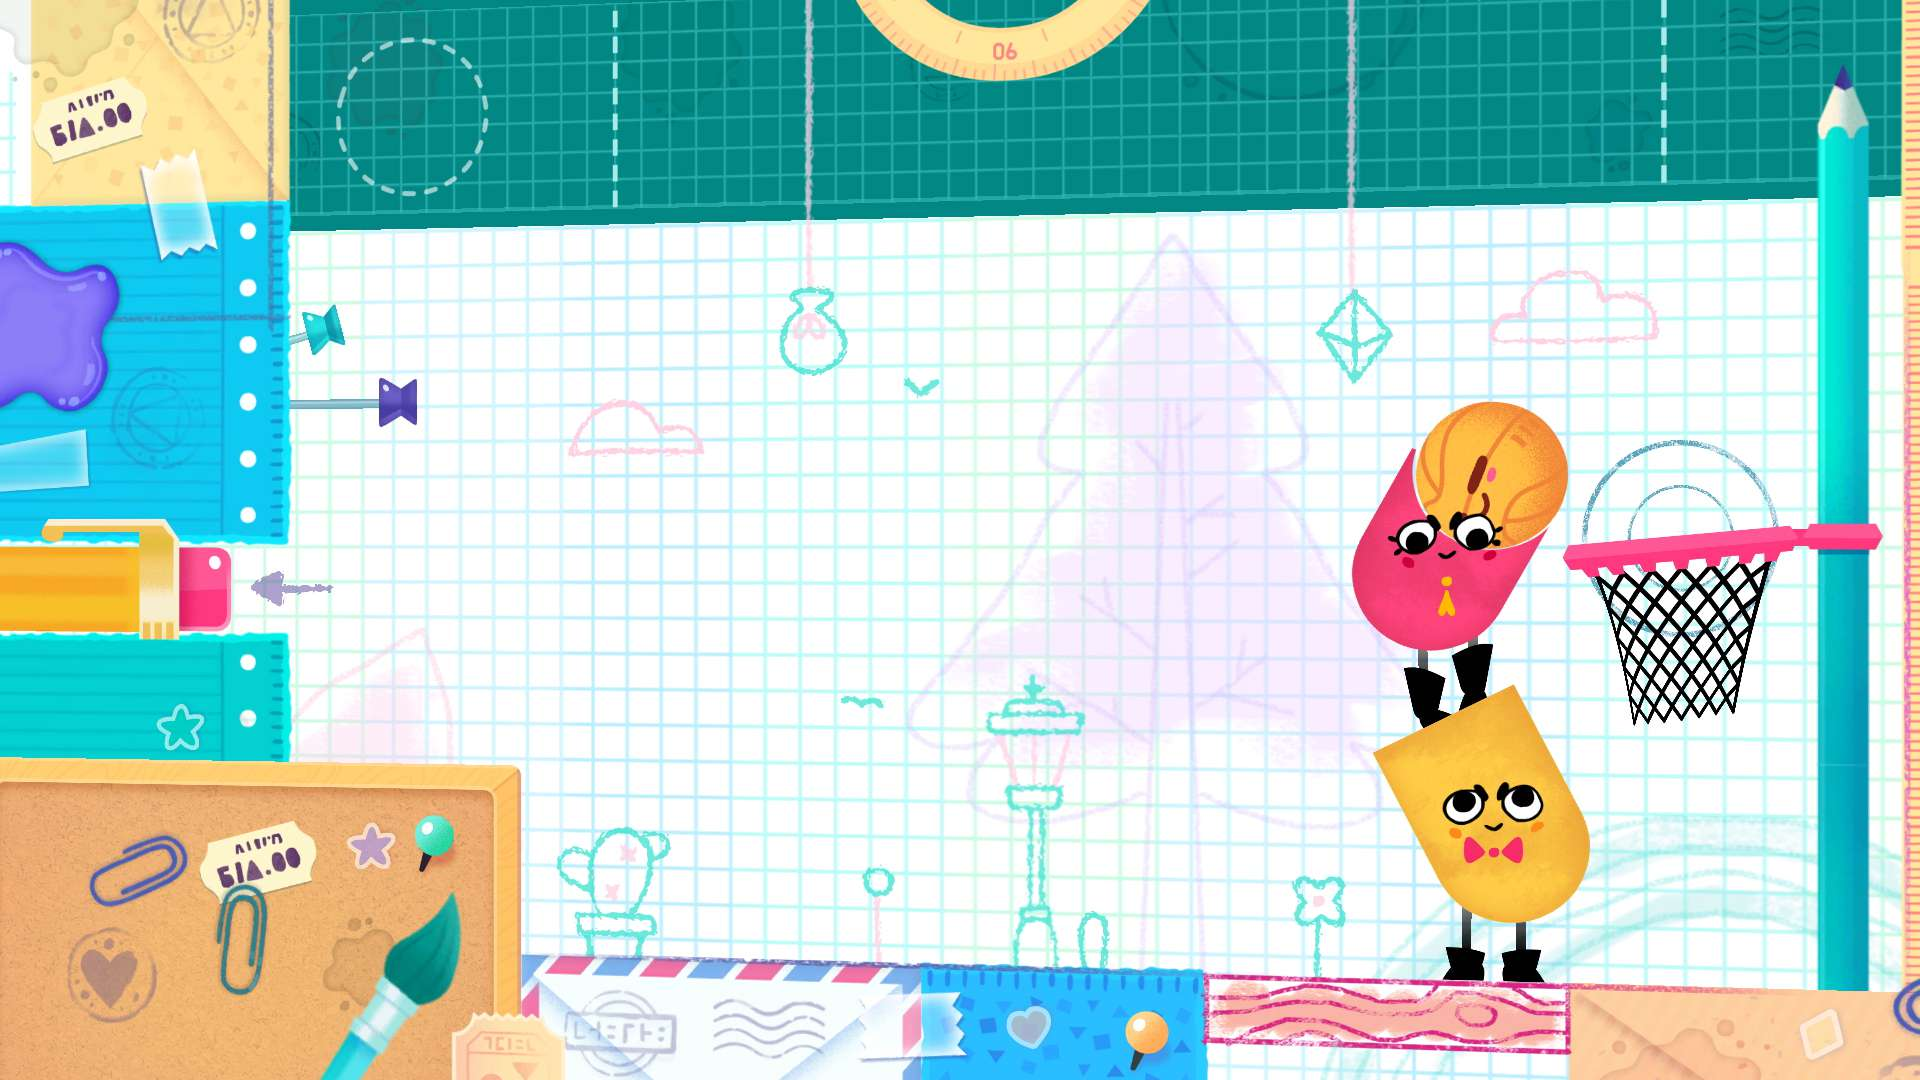 Snipperclips: Cut it out, together! #7